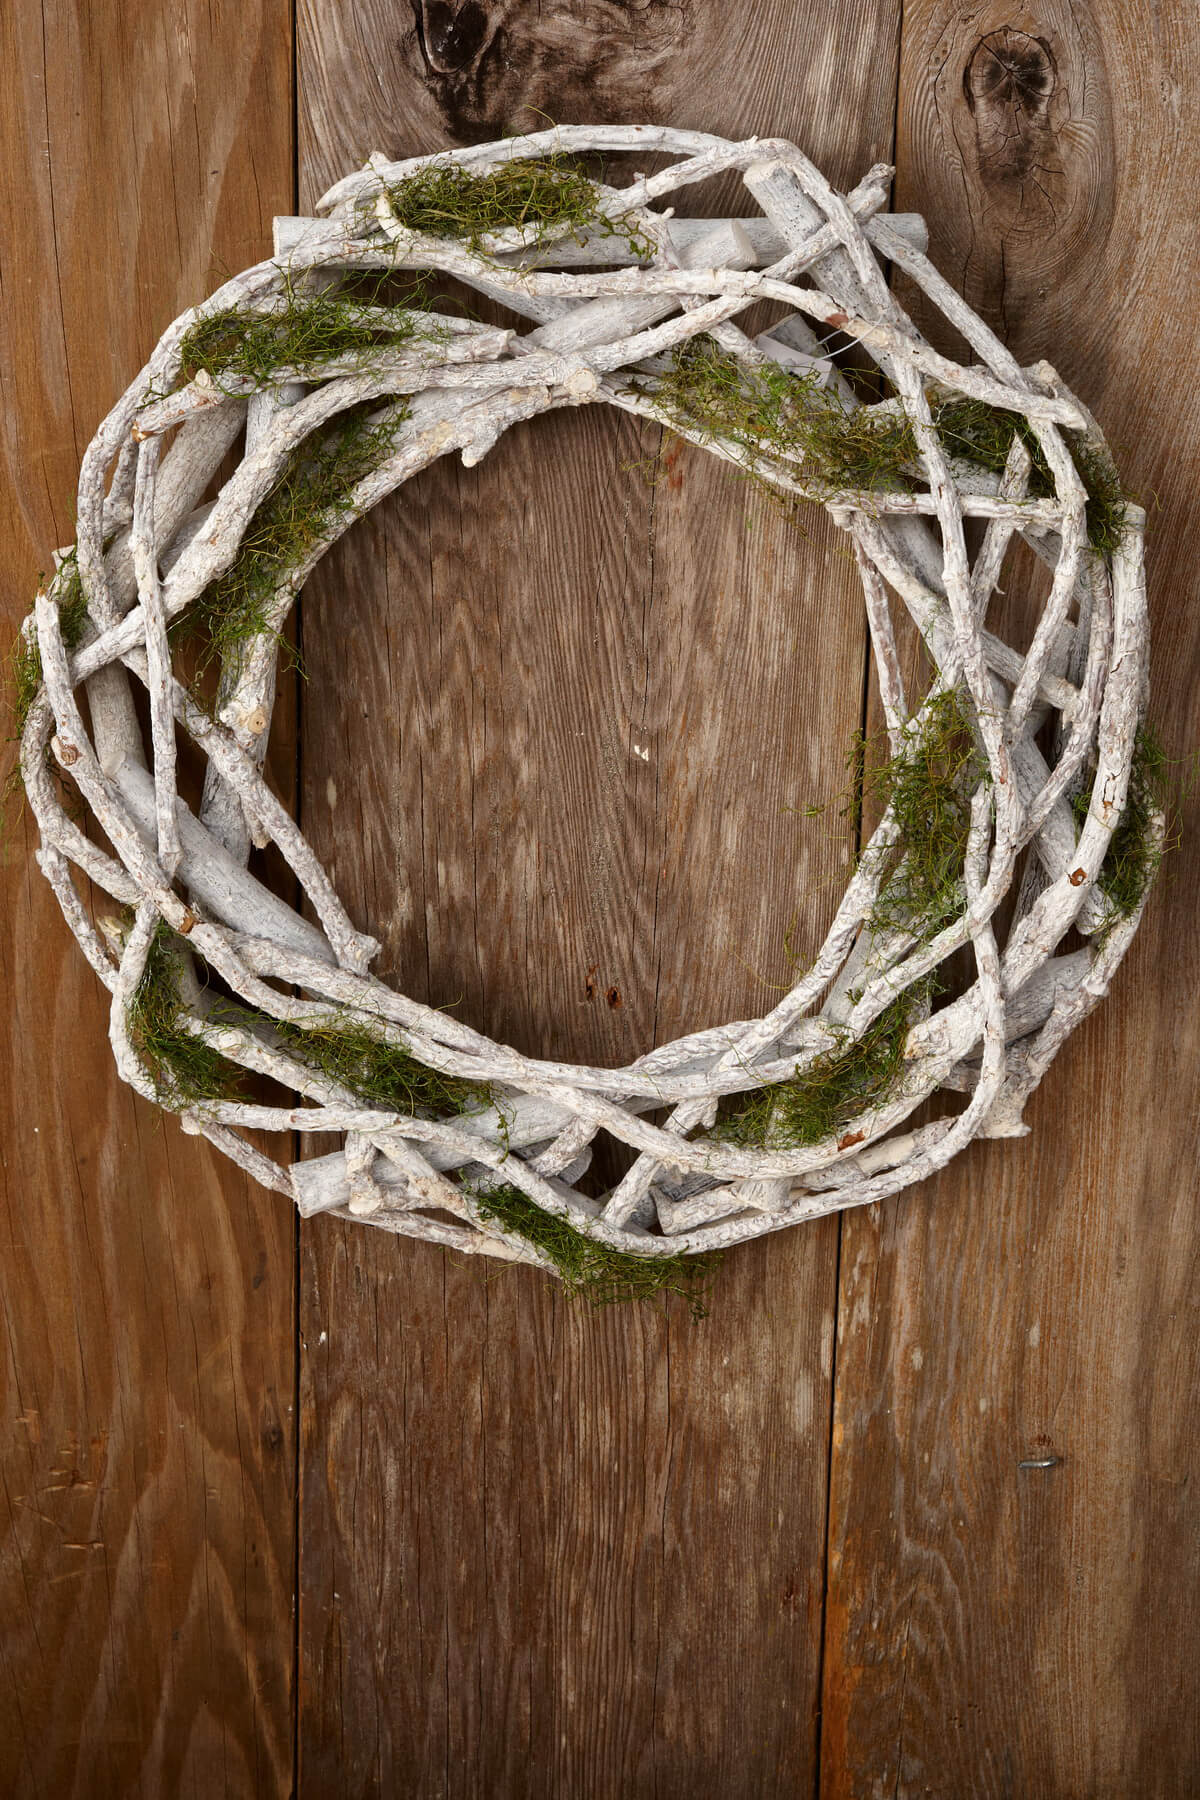 Grape vine for crafts - Twig Moss Wreath 15in